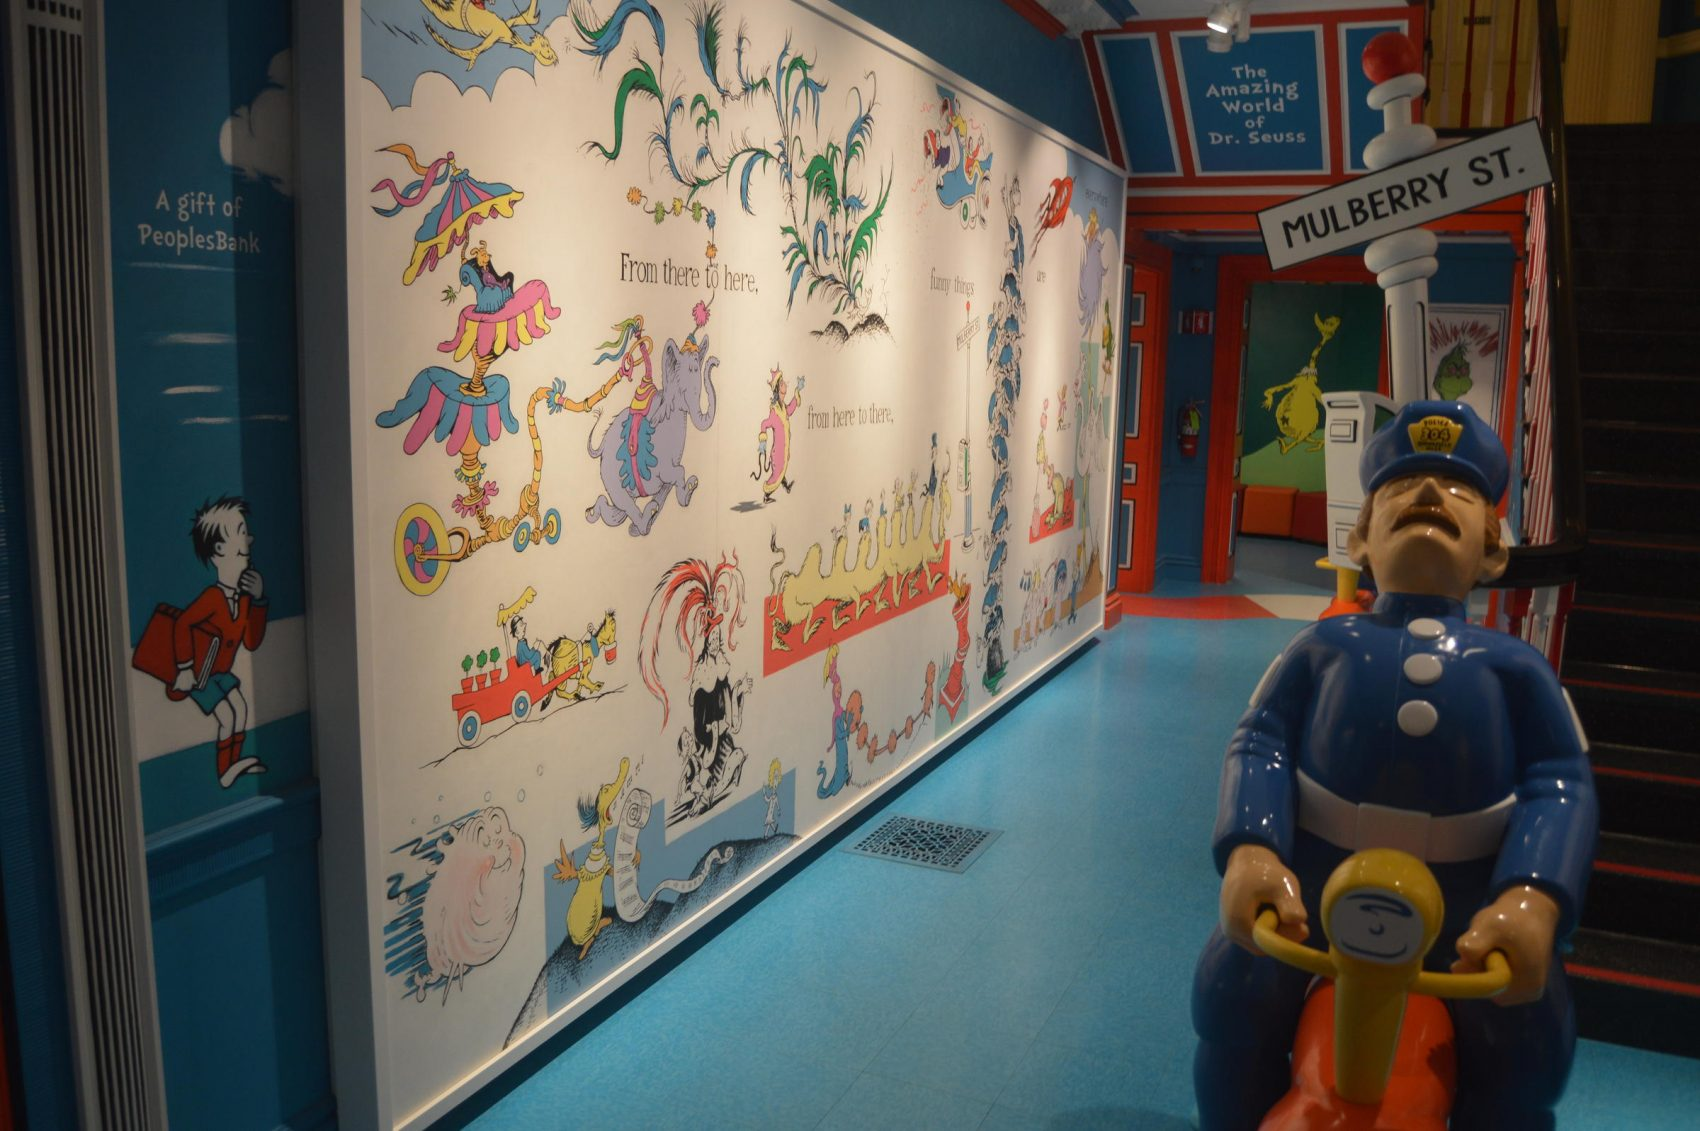 Controversial Mural Replaced At Springfield's Dr. Seuss Museum